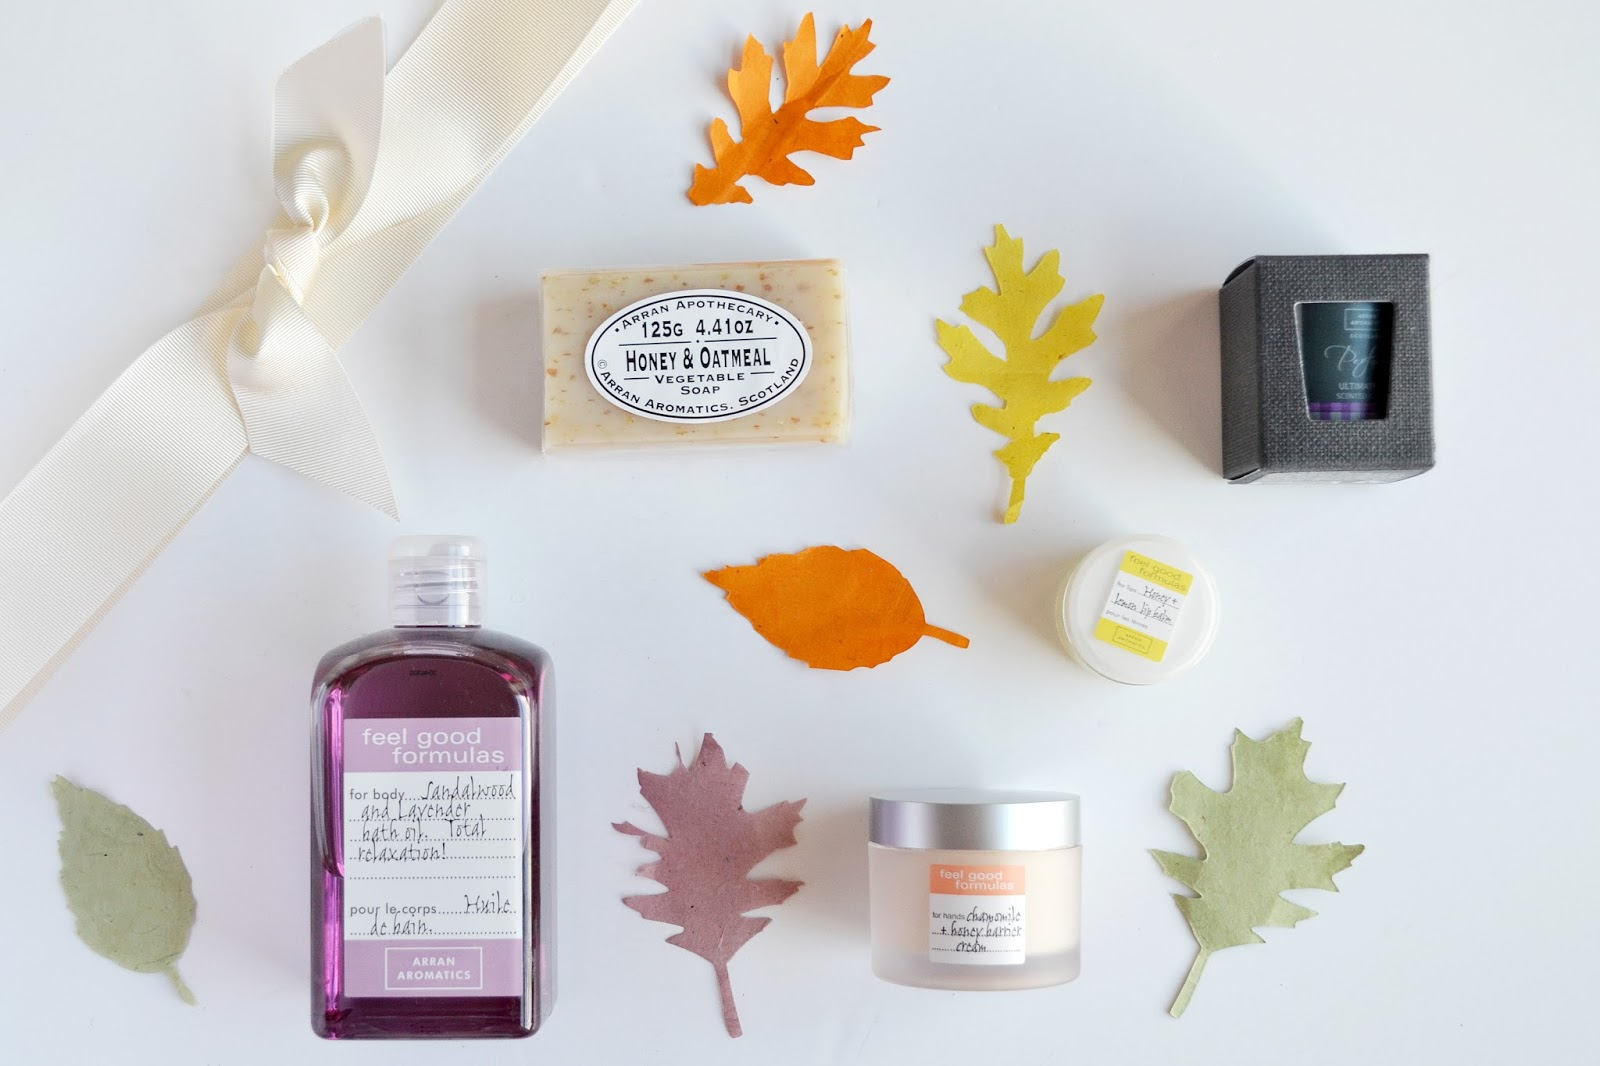 arran aromatics, pamper products, affordable pamper products